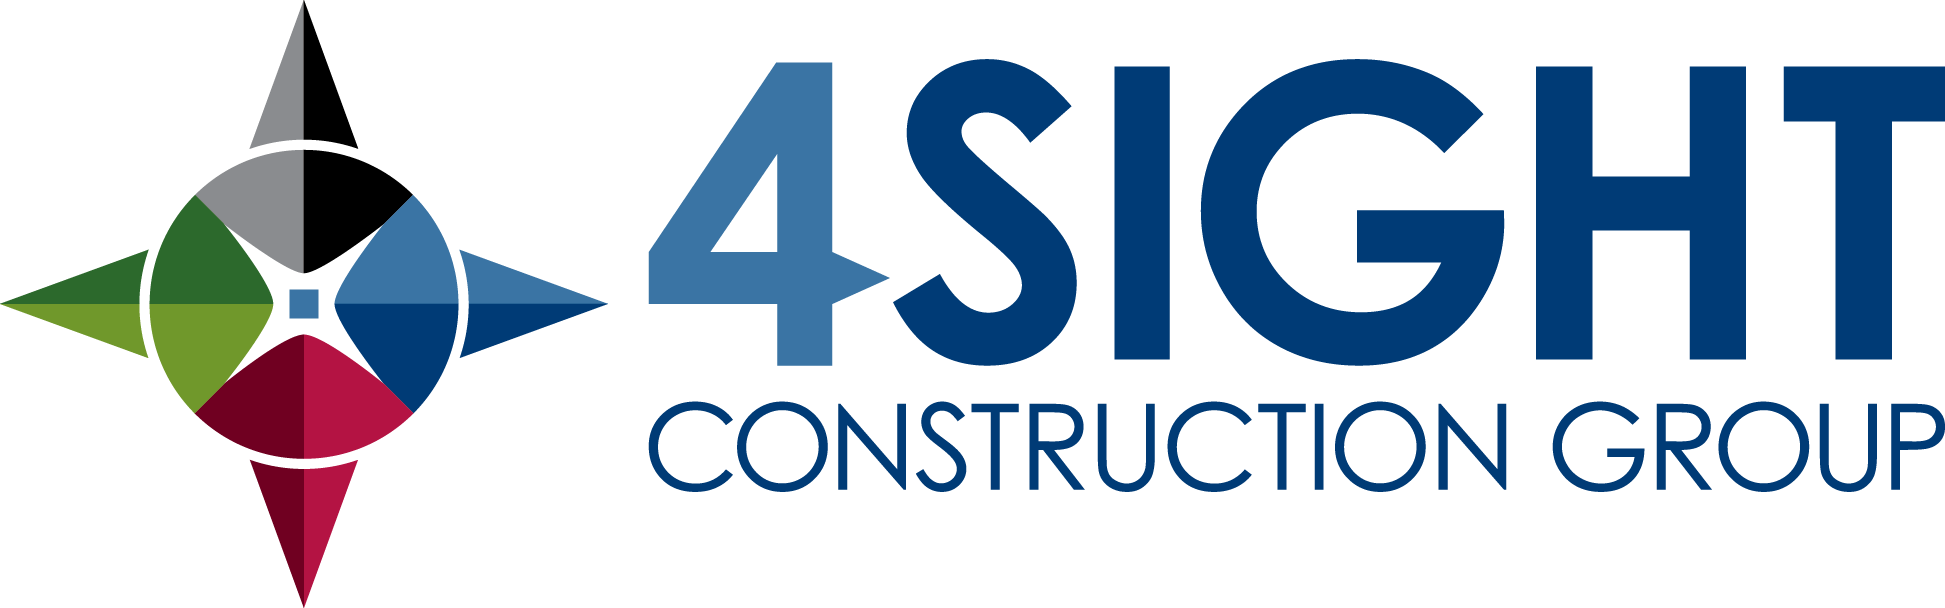 4 Sight Construction Group